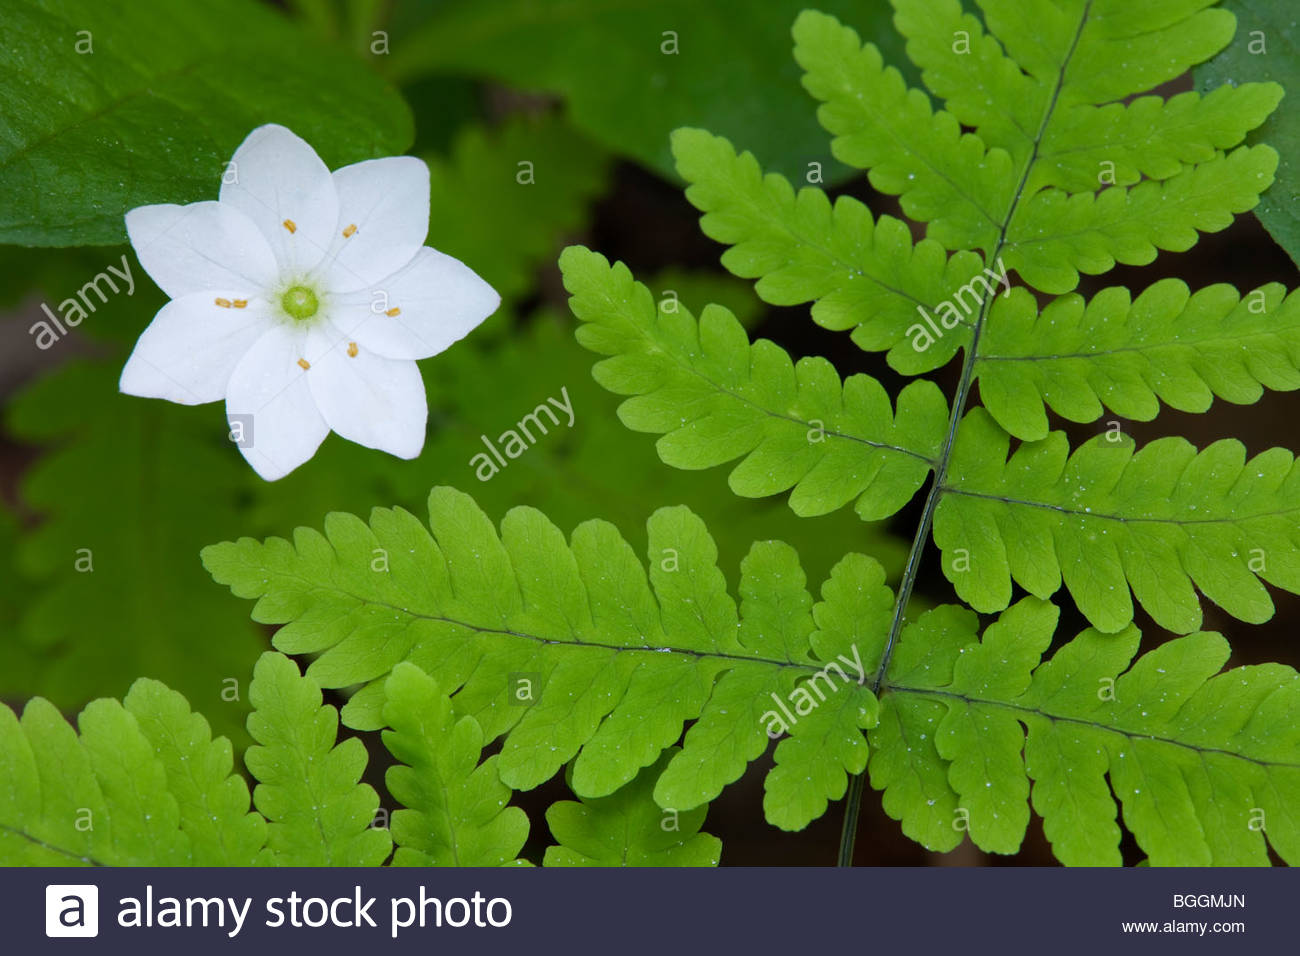 Alaska, Wasilla Macro photograph of Star Flower (Trientalis europea ssp arctica) and fern on forest floor. - Stock Image